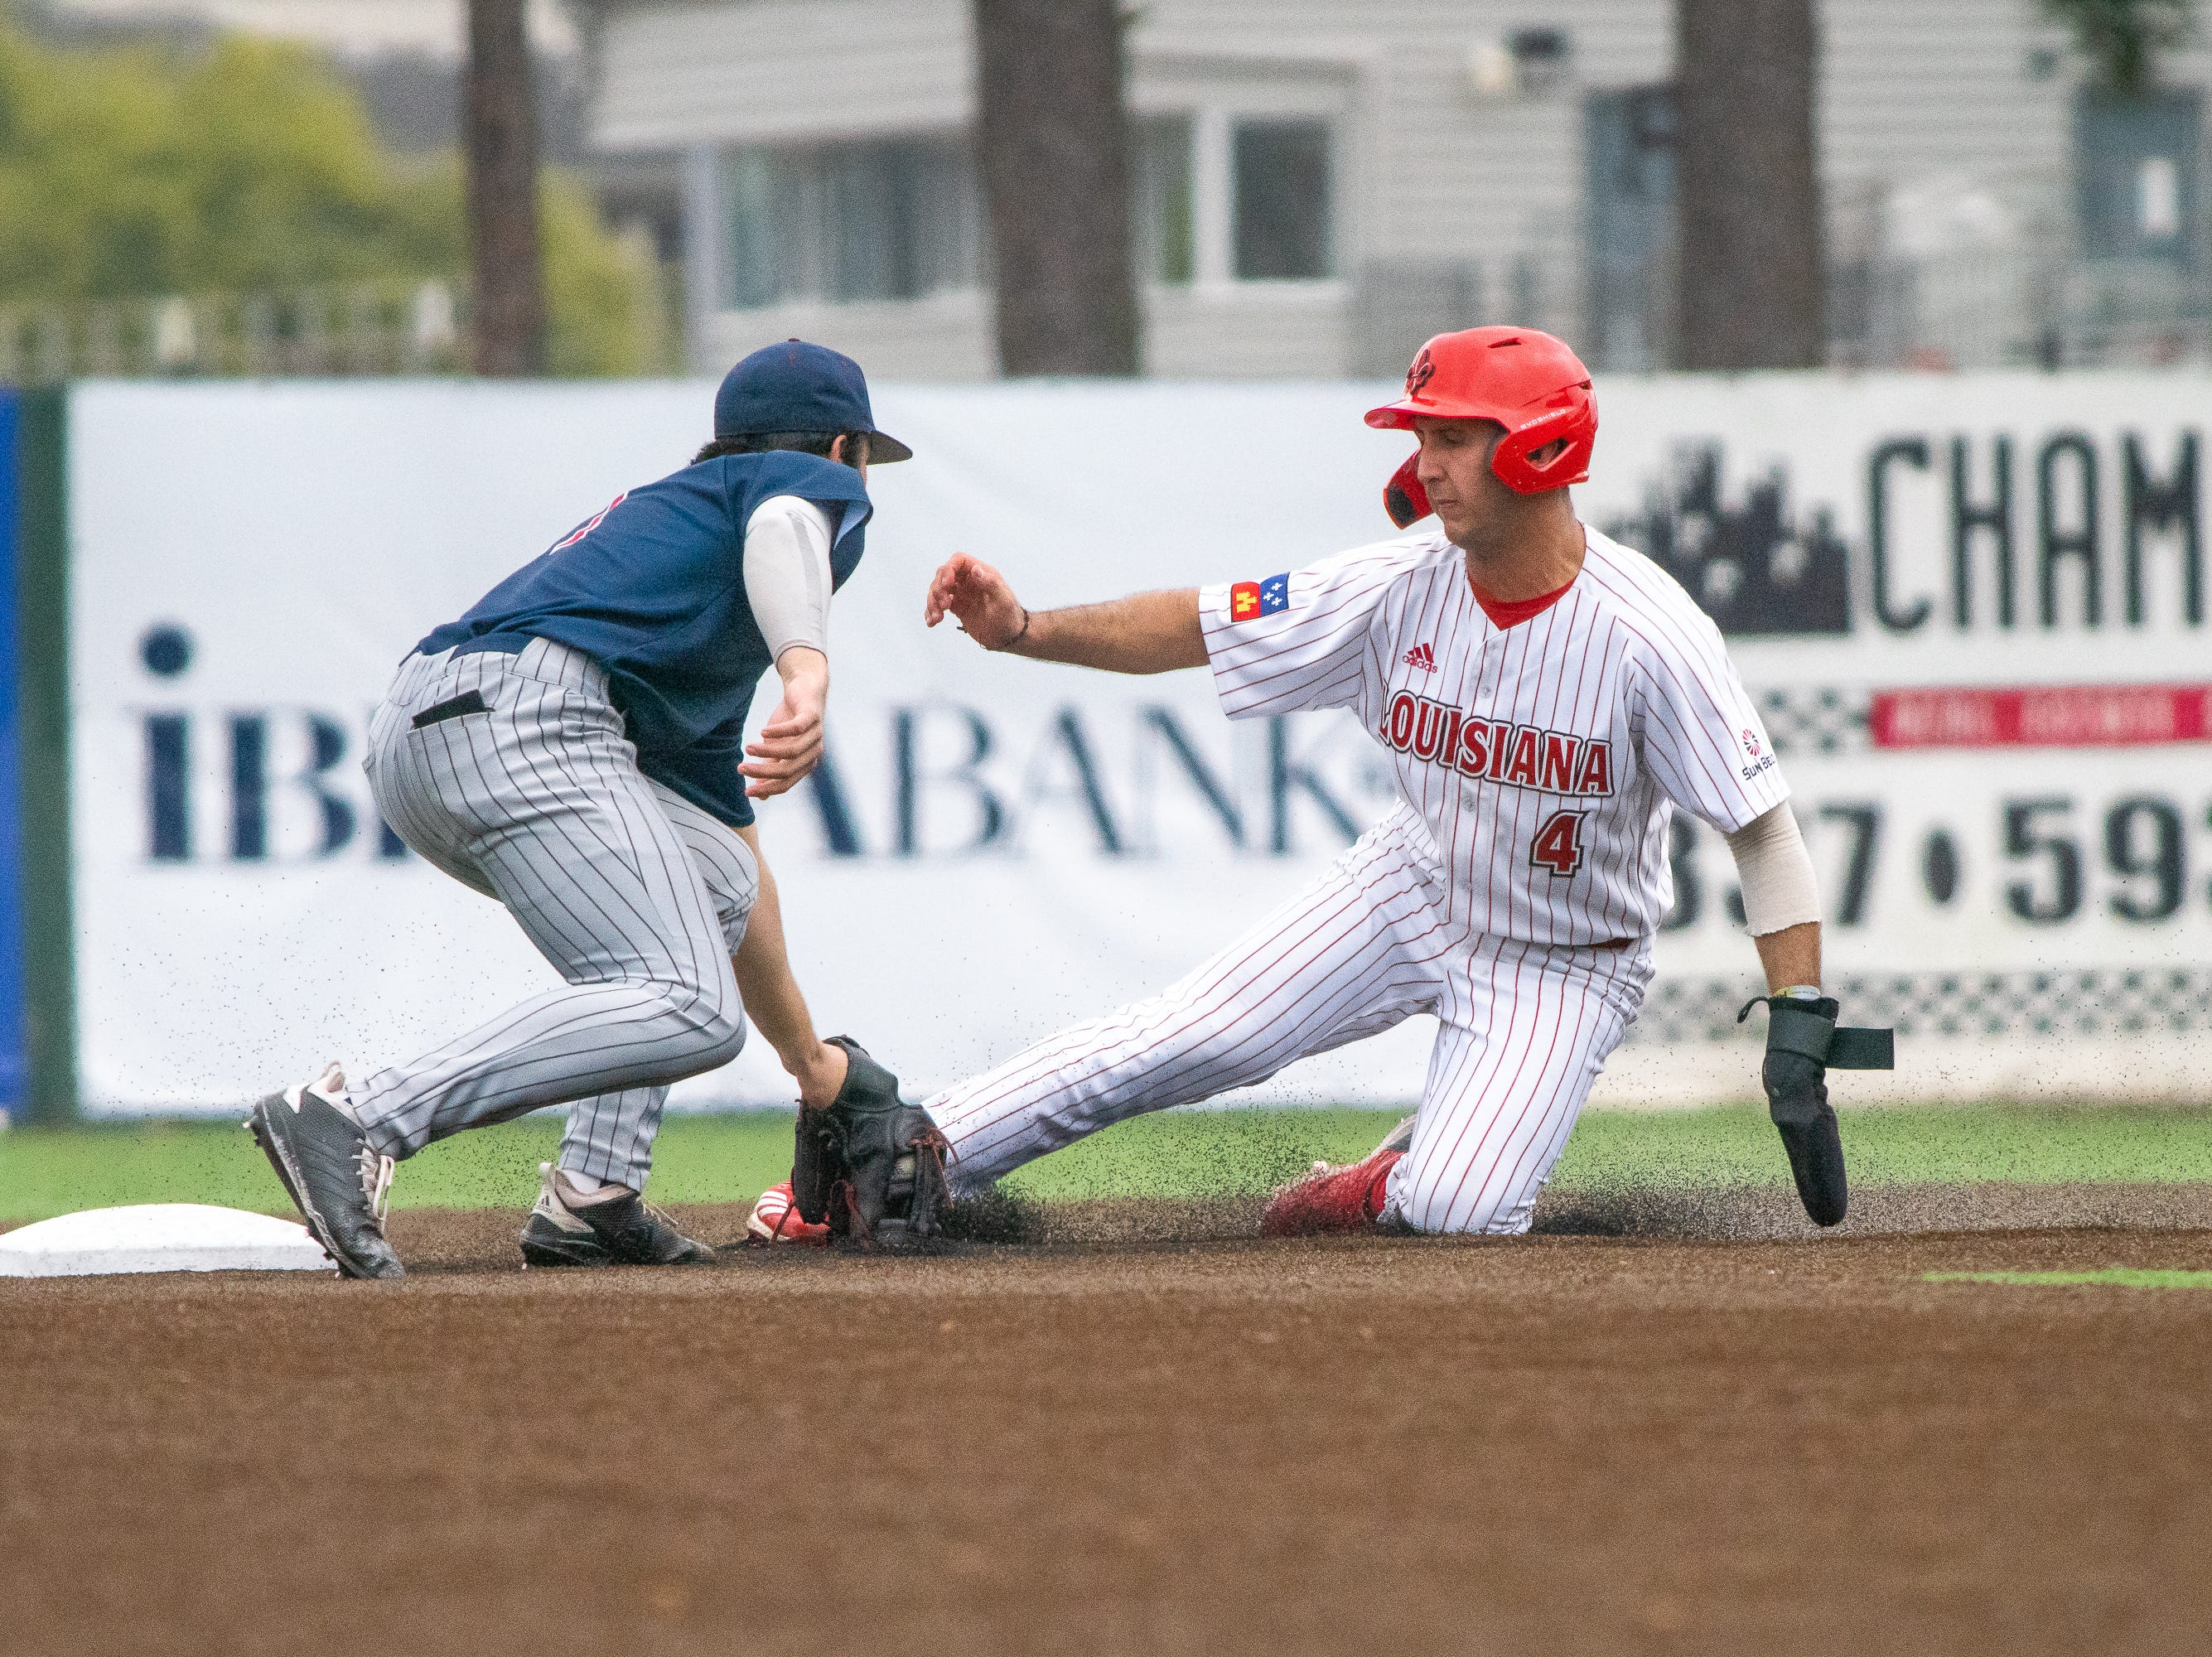 UL's Brennan Breaux gets tagged while sliding onto second base as the Ragin' Cajuns take on the Loyola Marymount Lions at M.L. Tigue Moore Field on March 10, 2019.